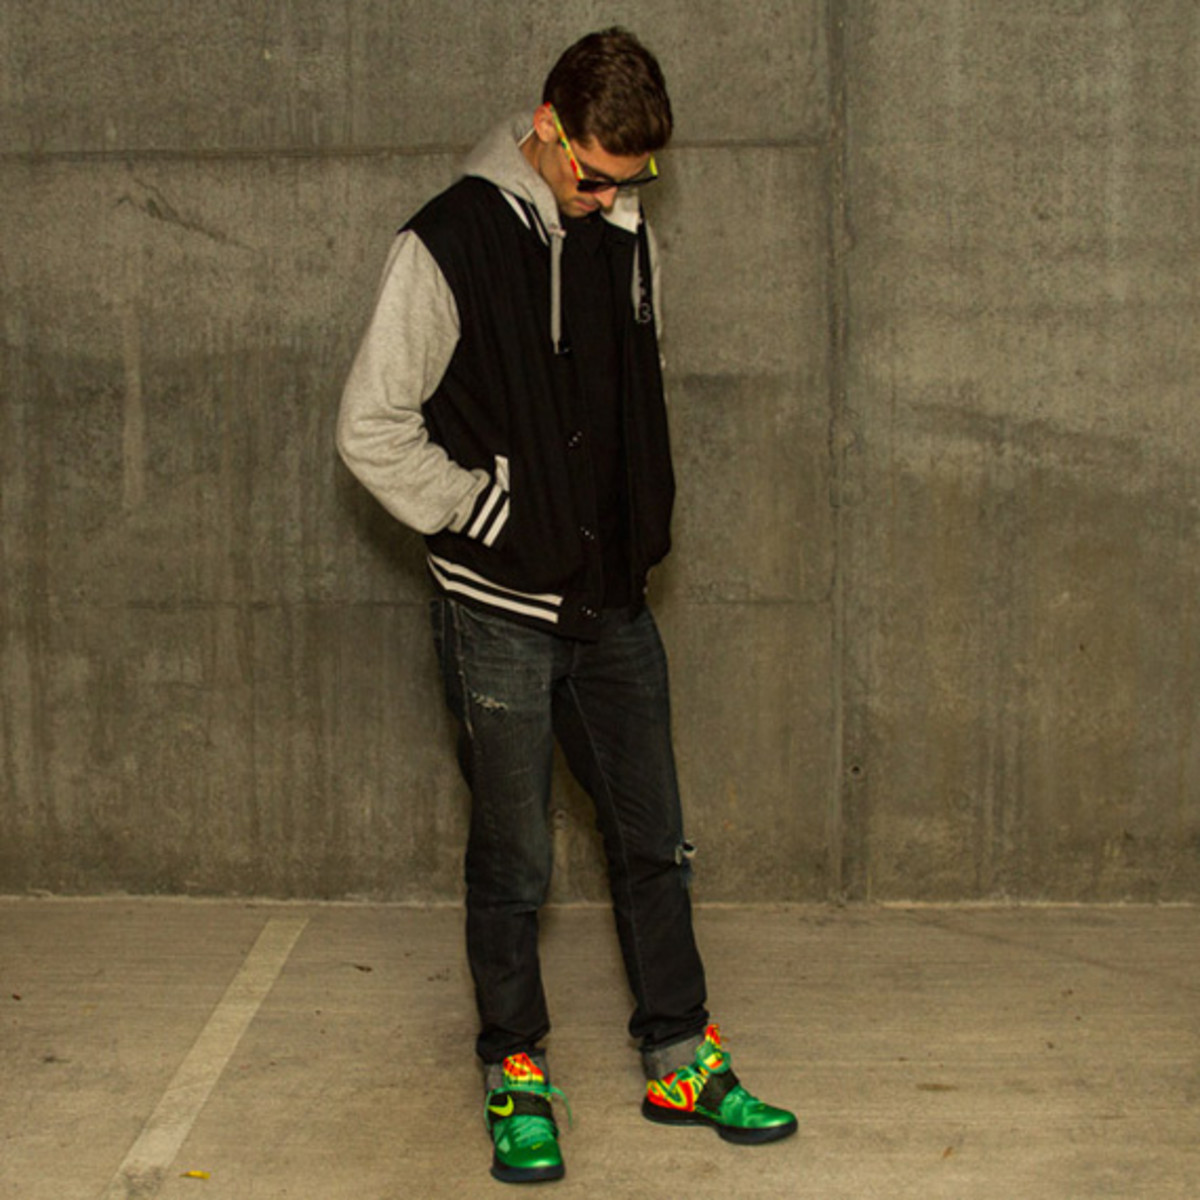 look-see-weatherman-sunglasses-inspired-nike-zoom-kd-iv-02